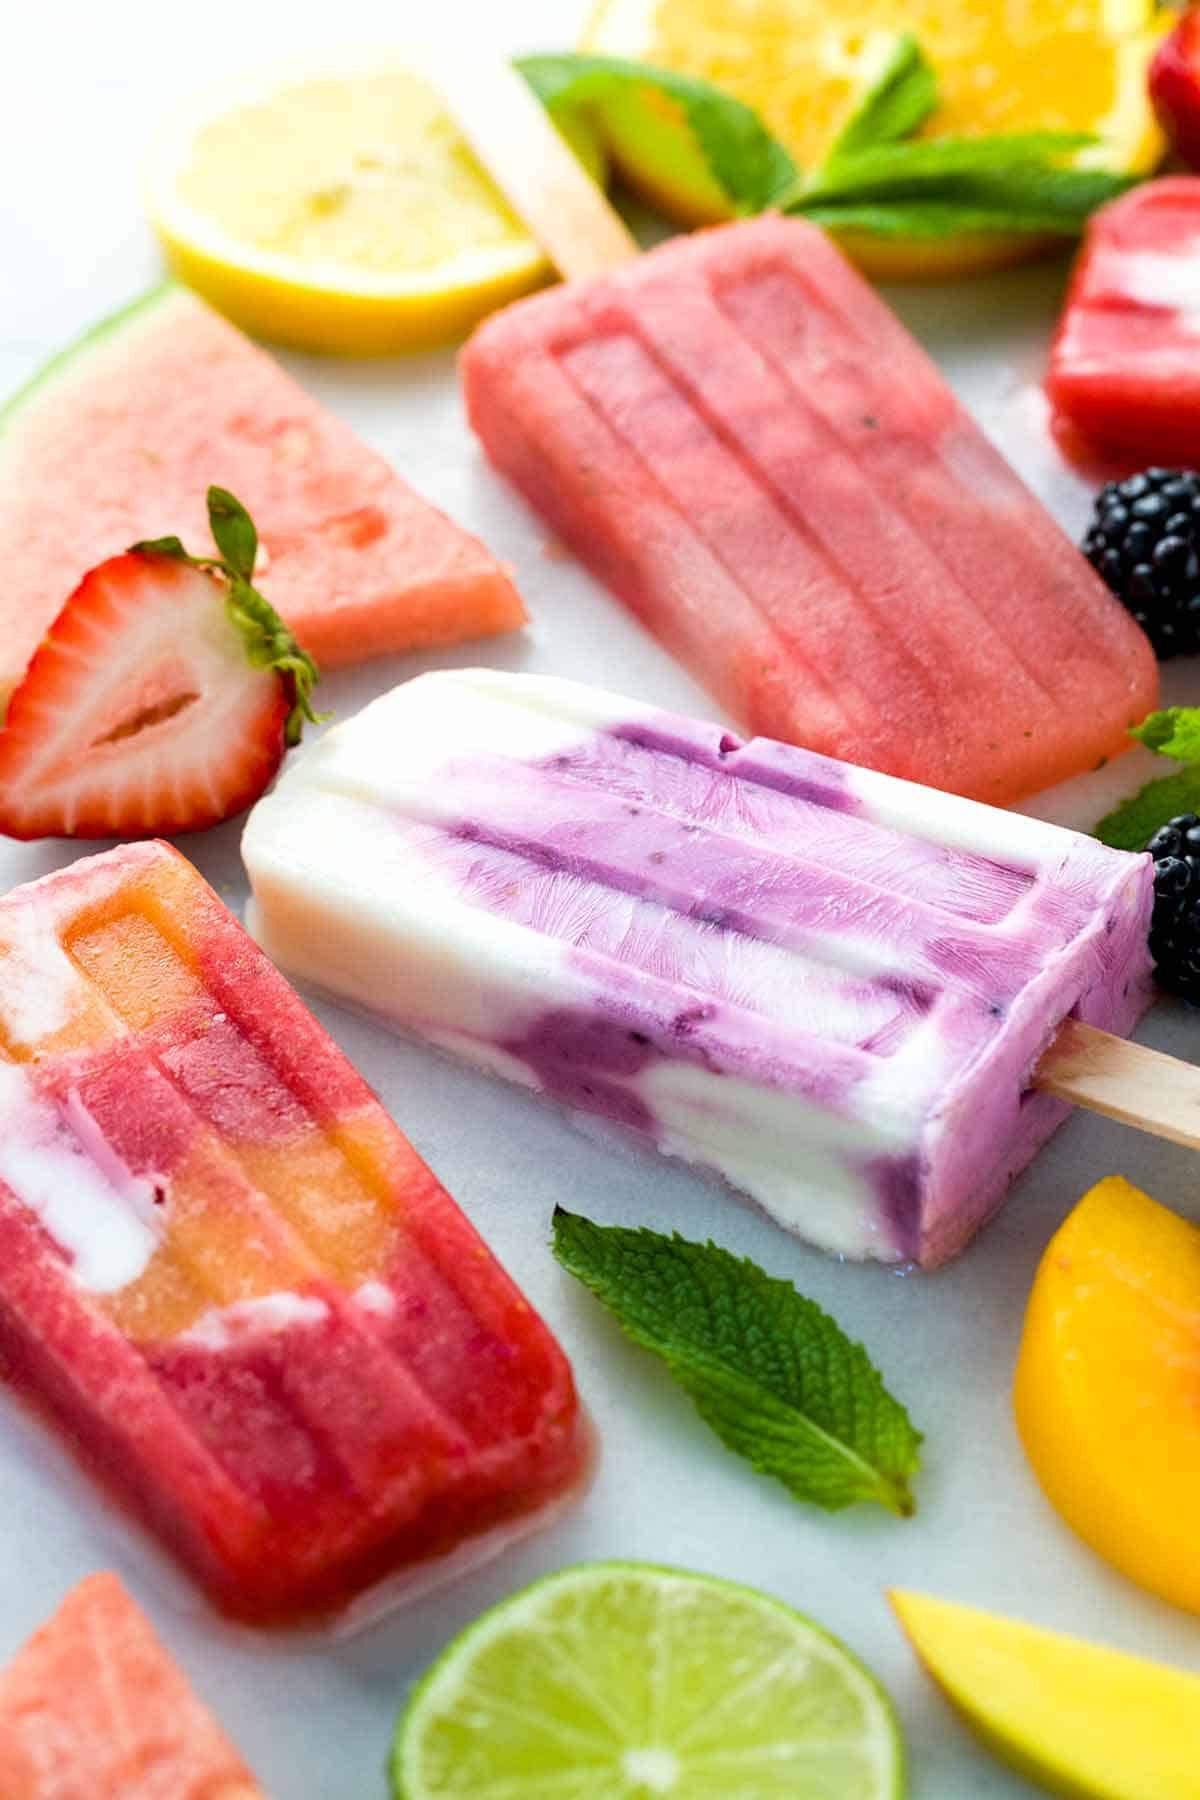 Healthy Homemade Fruit Popsicles #homemadepopsicleshealthy